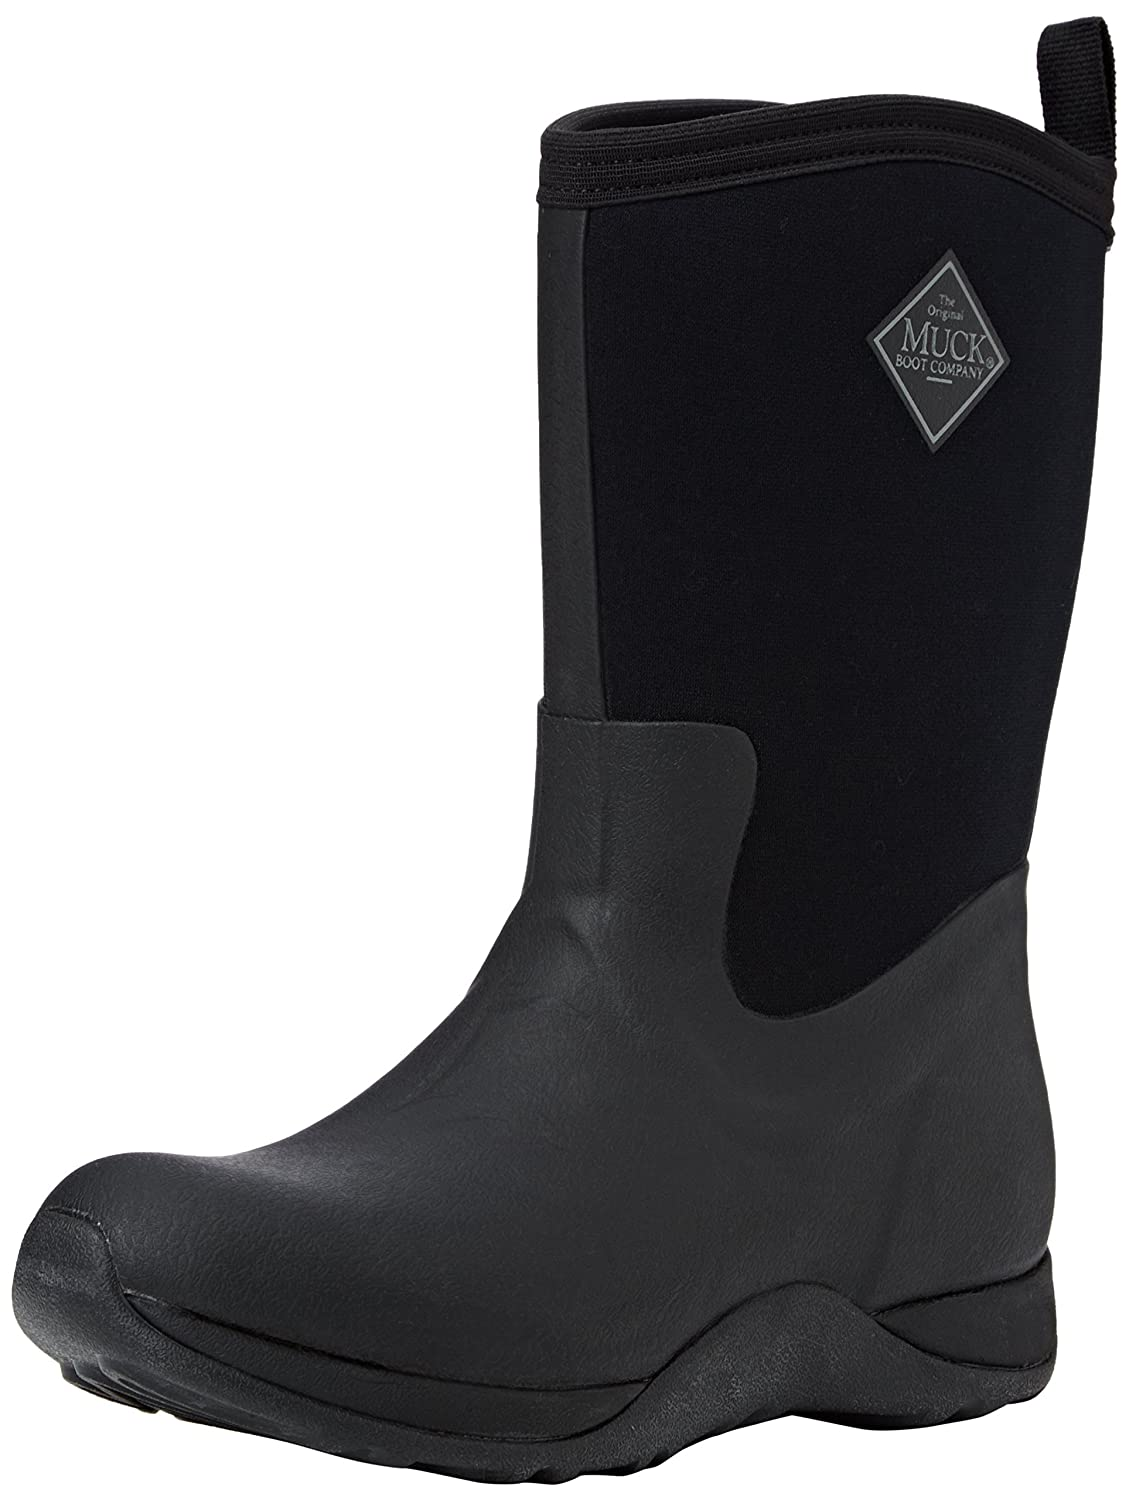 Muck Boot Company Women's Arctic Weekend Boot B00BN61E6Y 6 B(M) US|Black/Black